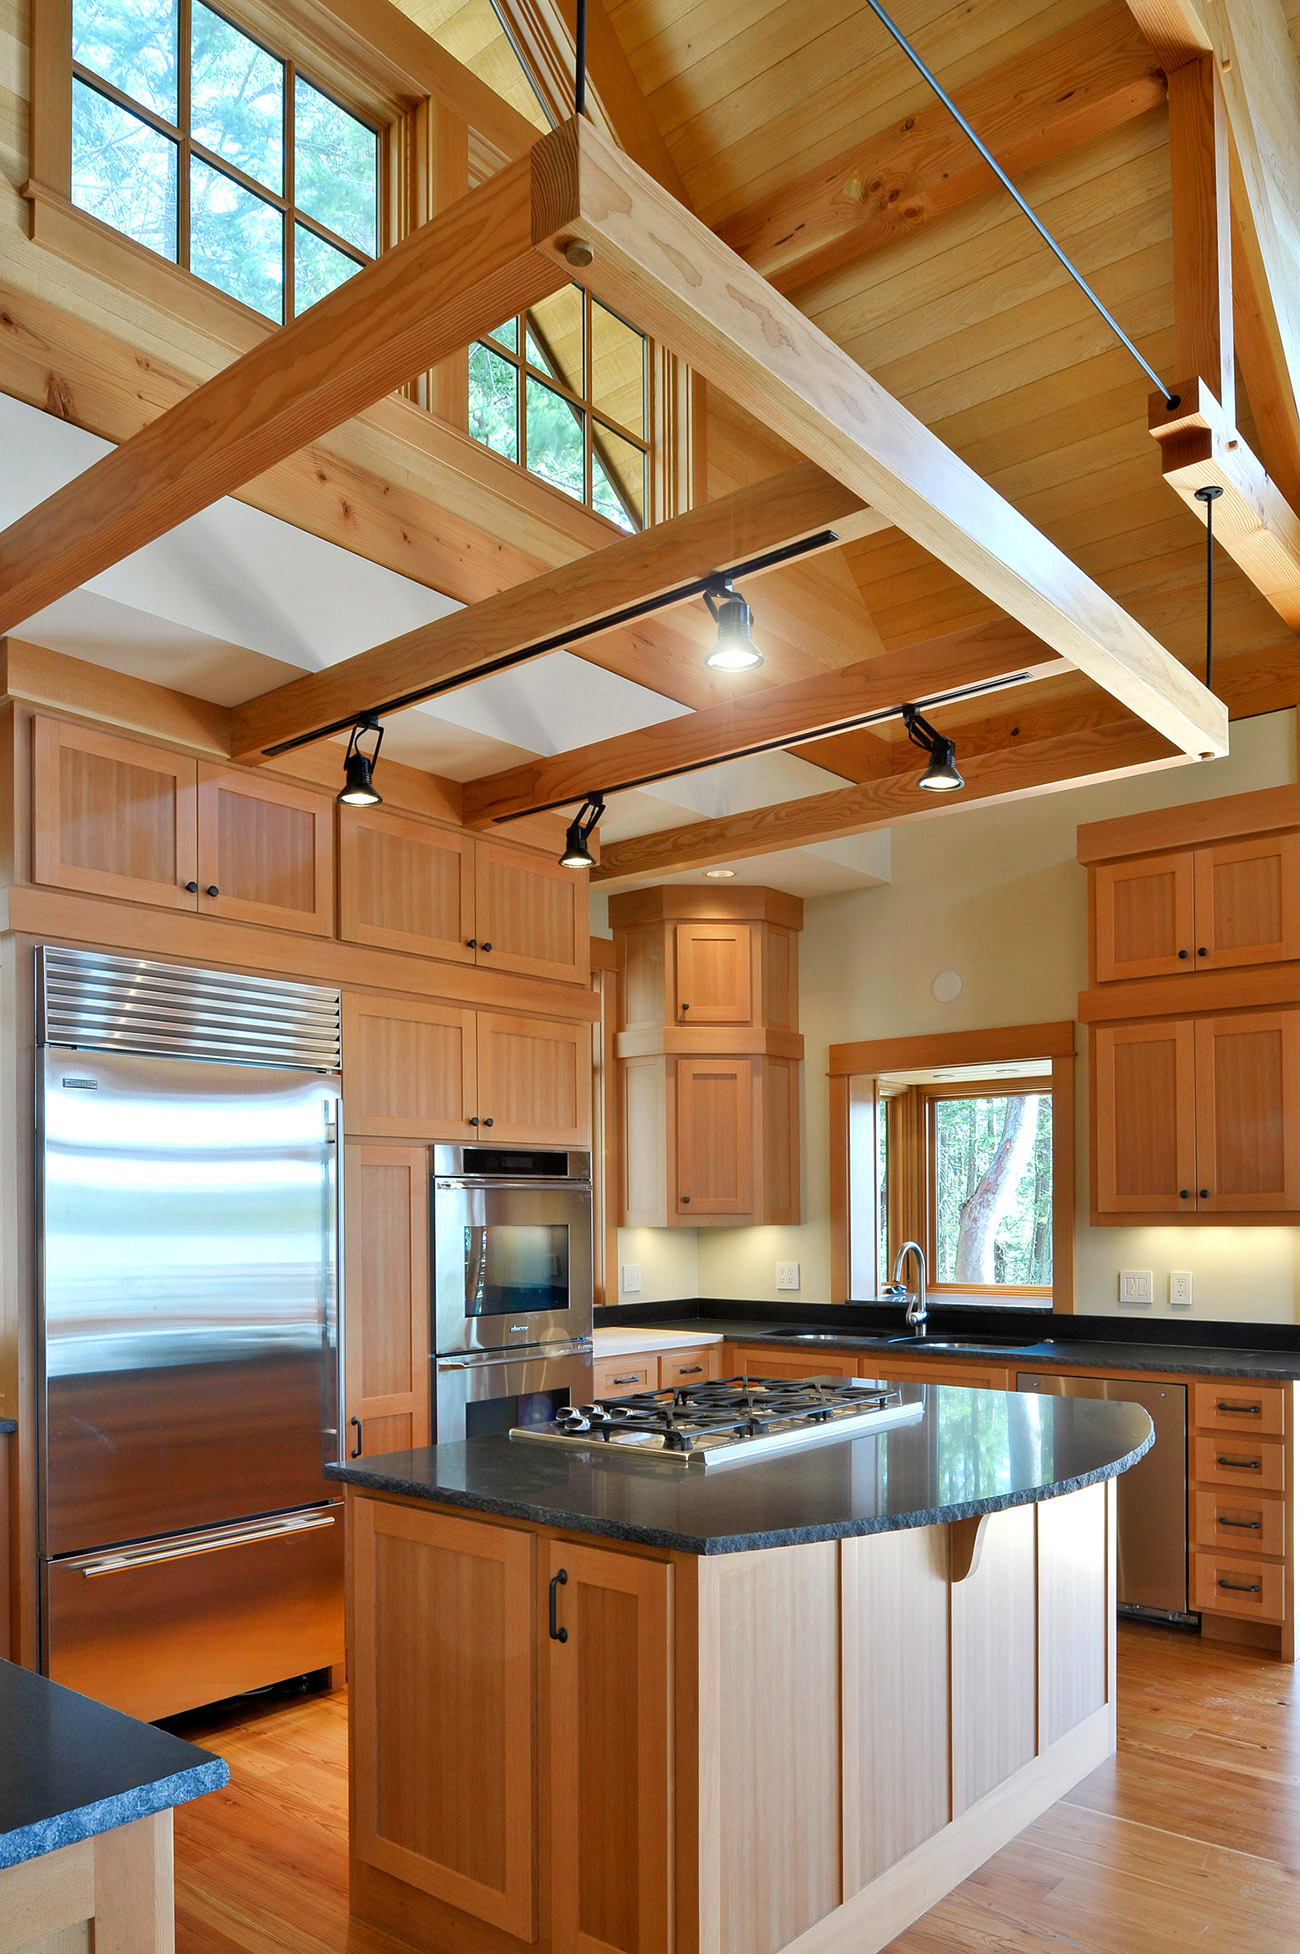 Woodsong custom home builders San Juan, Orcas, Lopez, Waldren, Shaw, islands